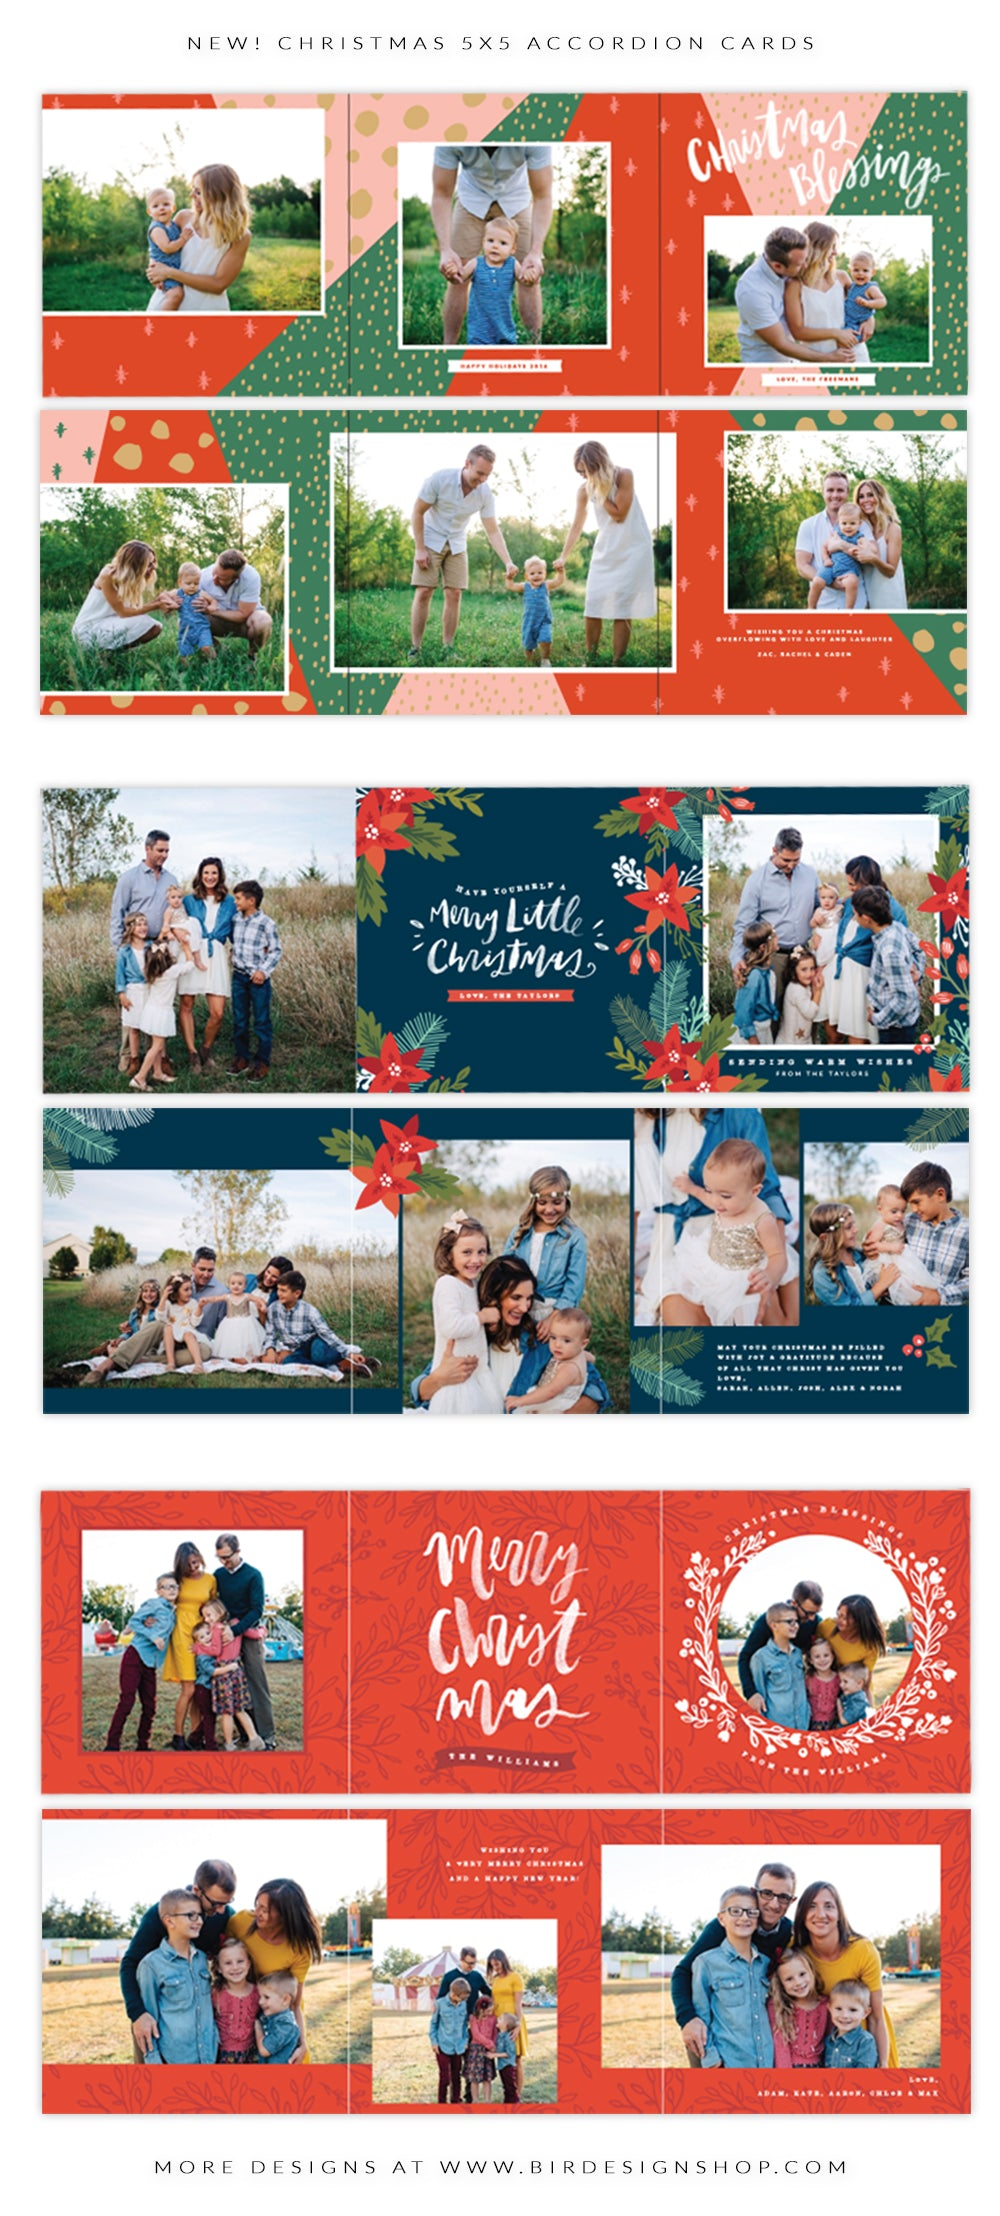 christmas 5x5 accordion card templates